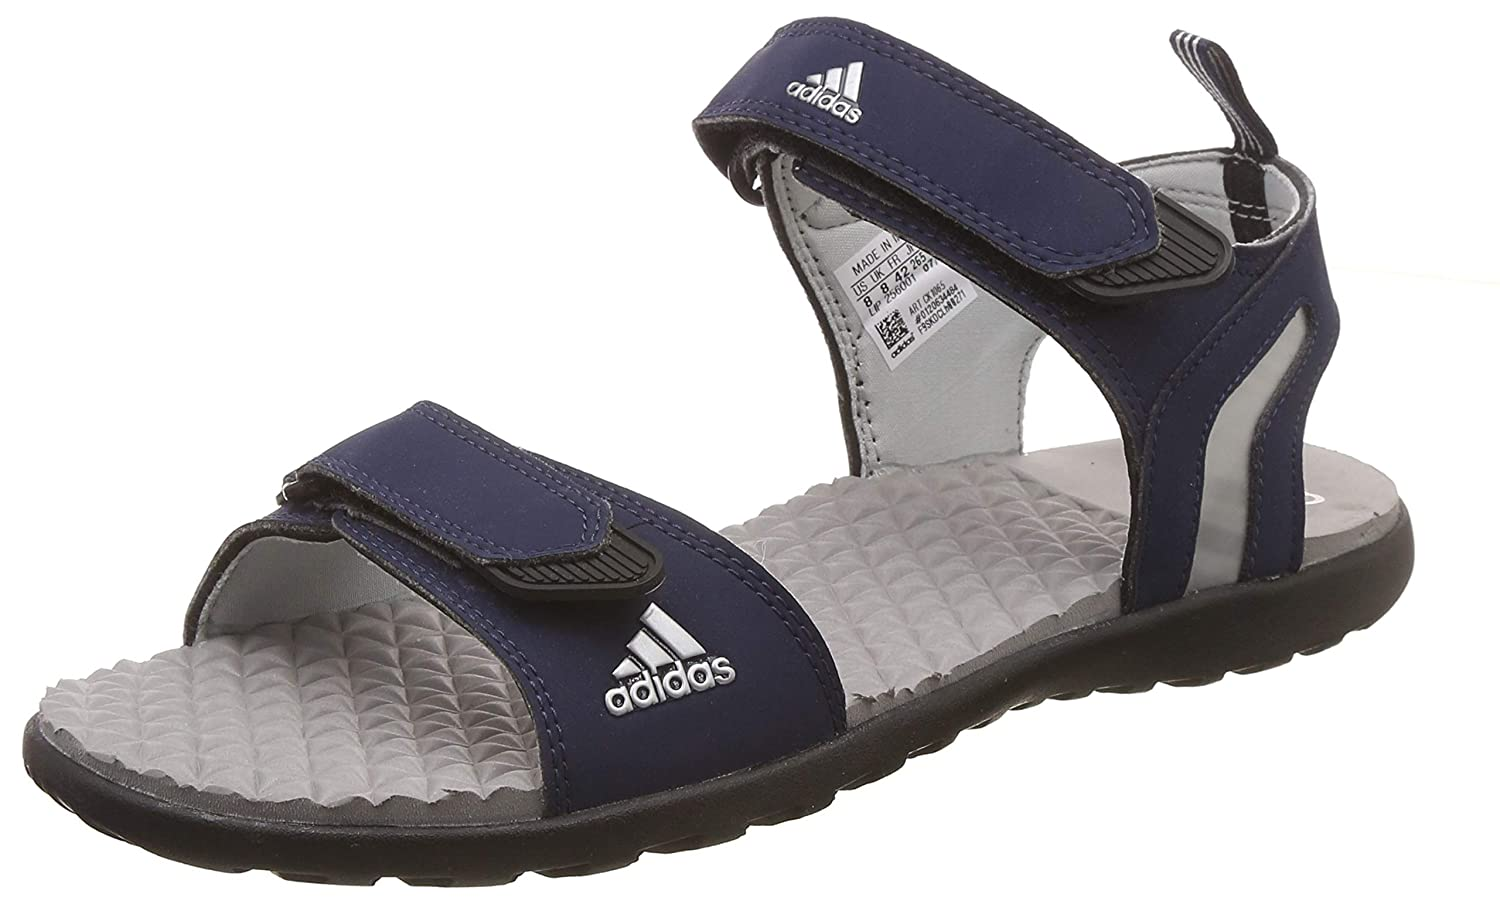 Adidas Men's Sandals: Buy Online at Low Prices in India - Amazon.in